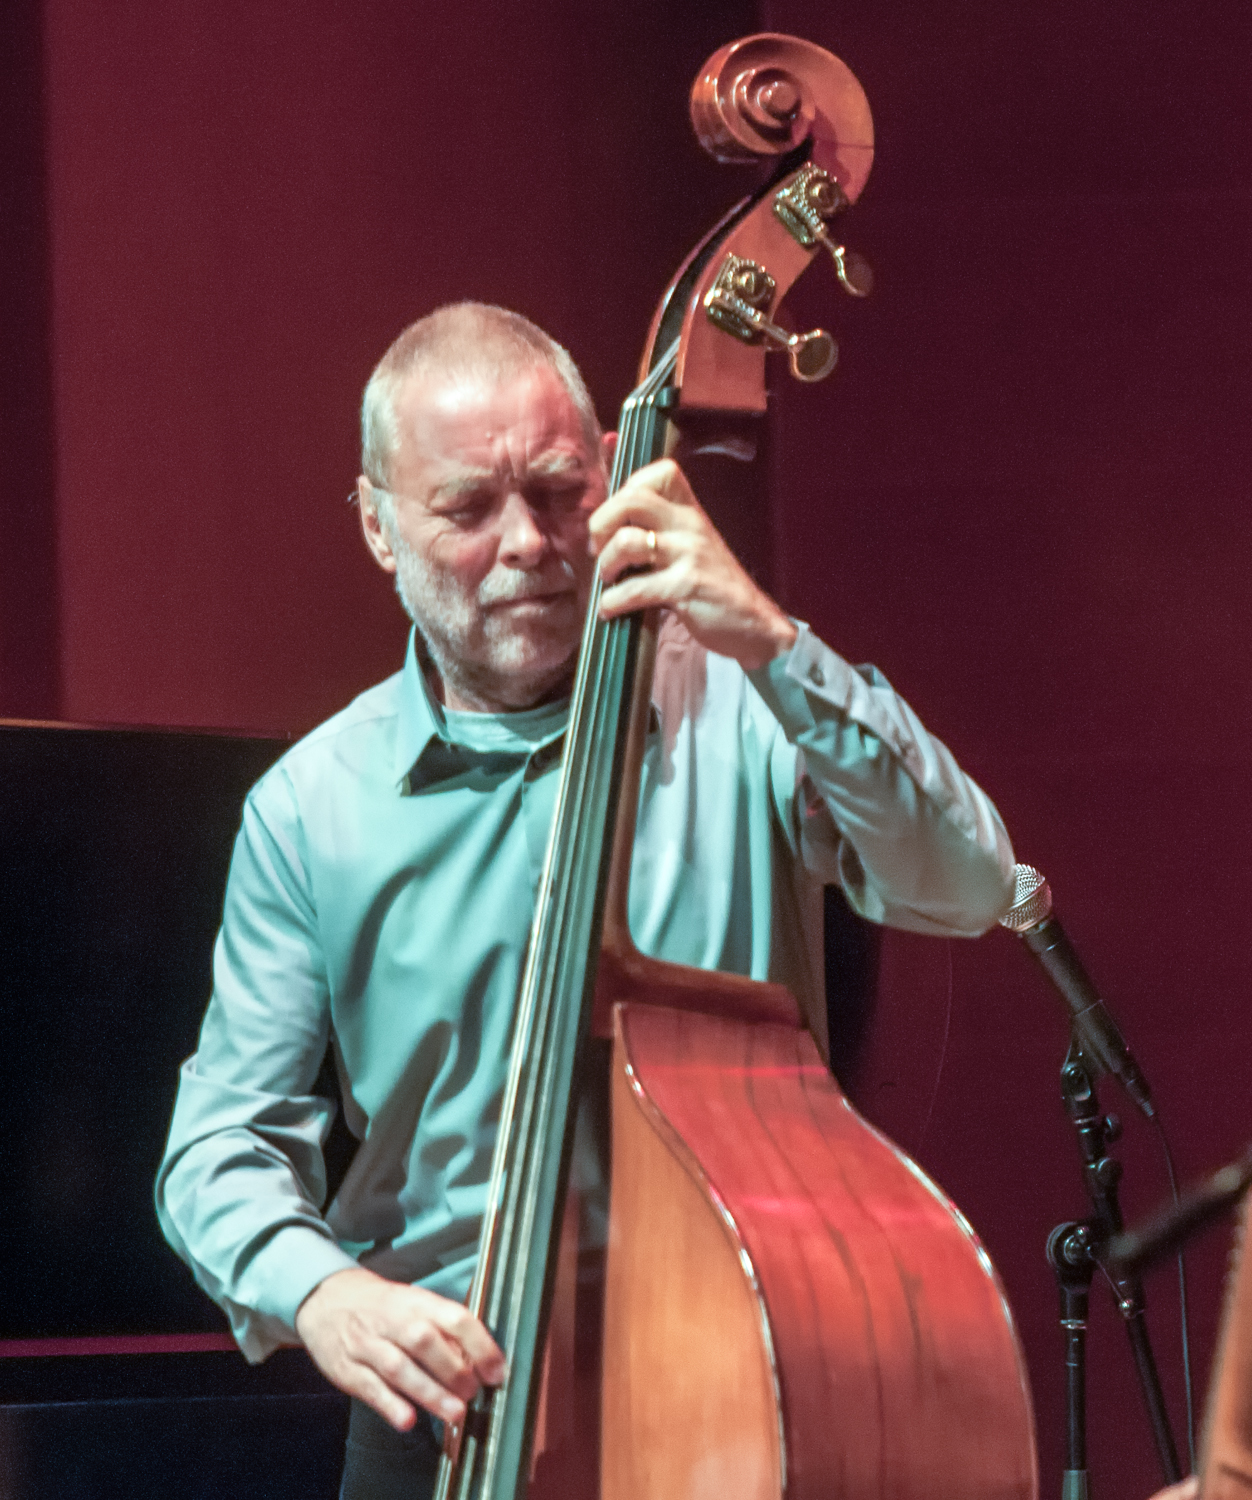 Dave Holland With Prism At The Musical Instruments Museum (mim) In Phoenix